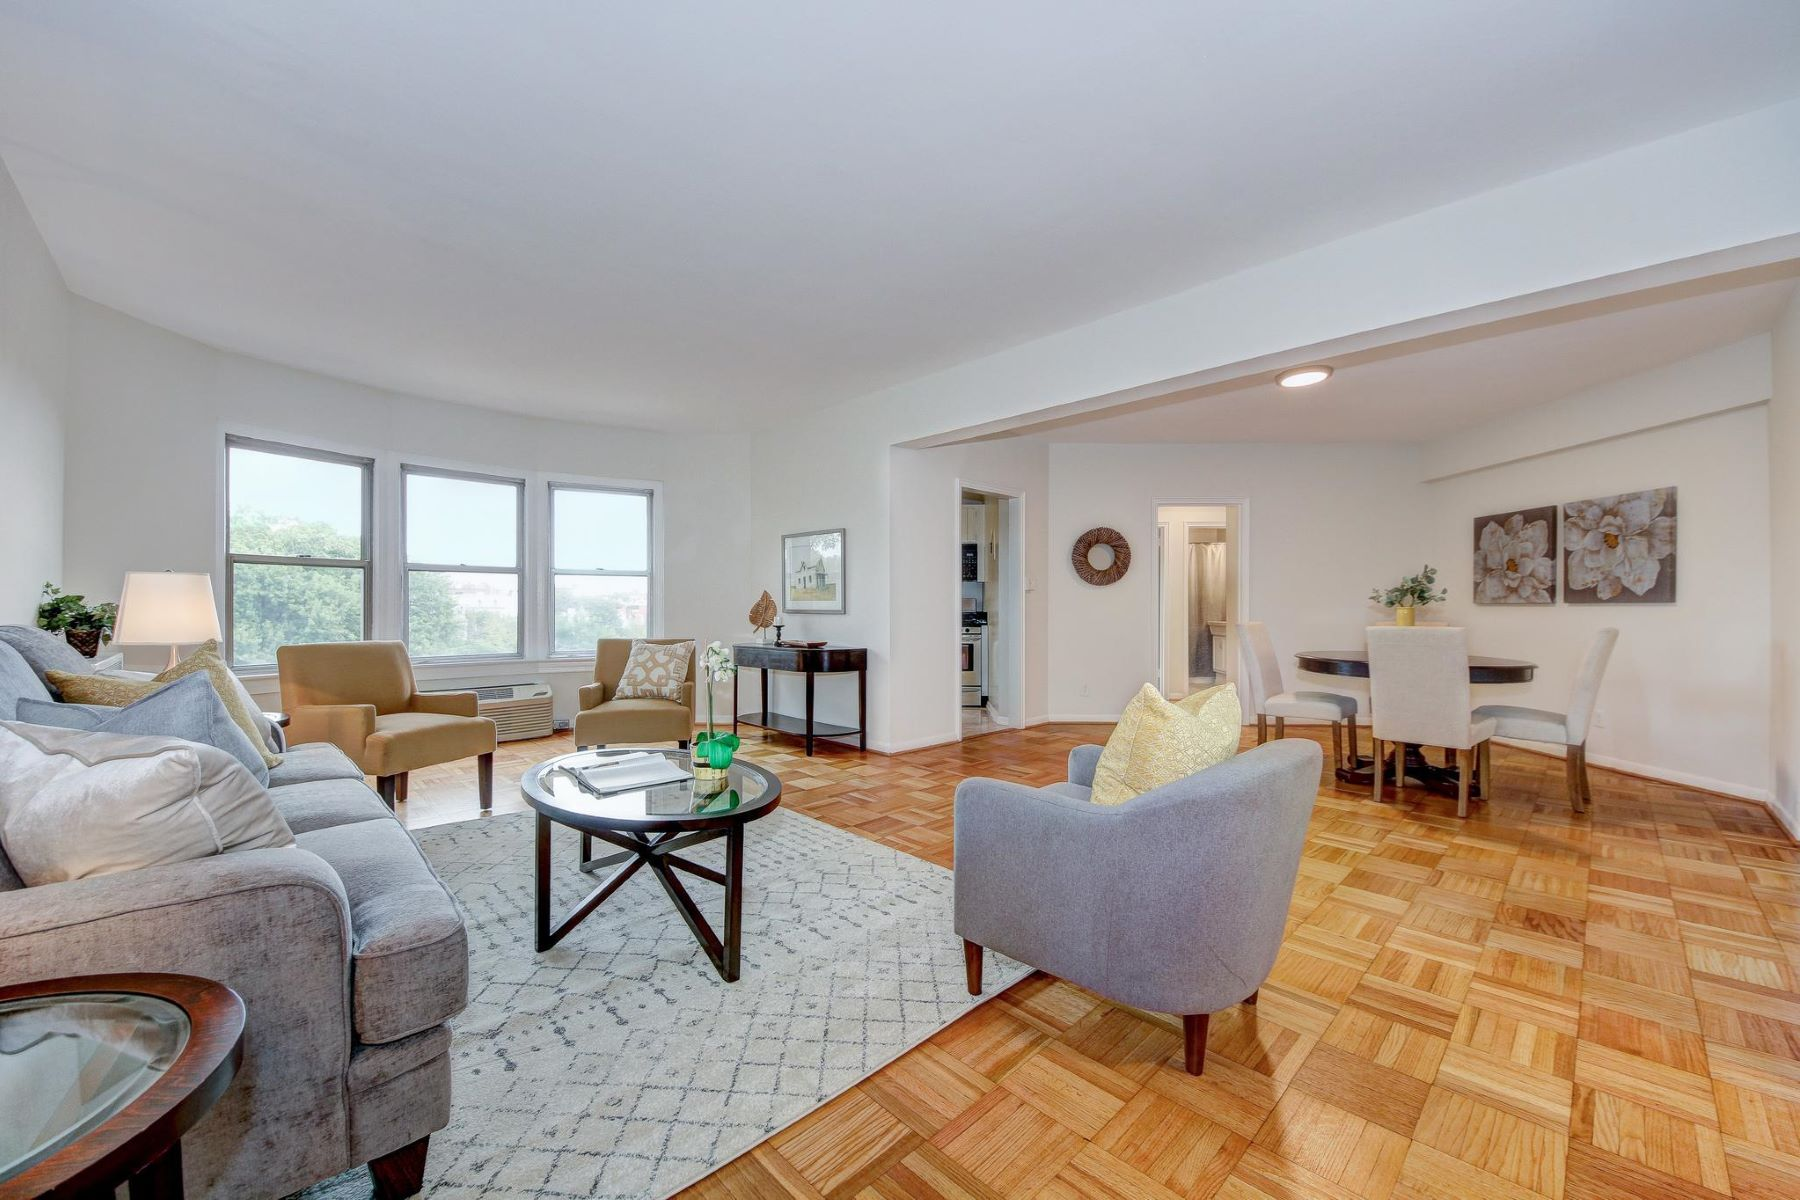 Property for Sale at 2500 Q St Nw #745 2500 Q St Nw #745 Washington, District Of Columbia 20007 United States